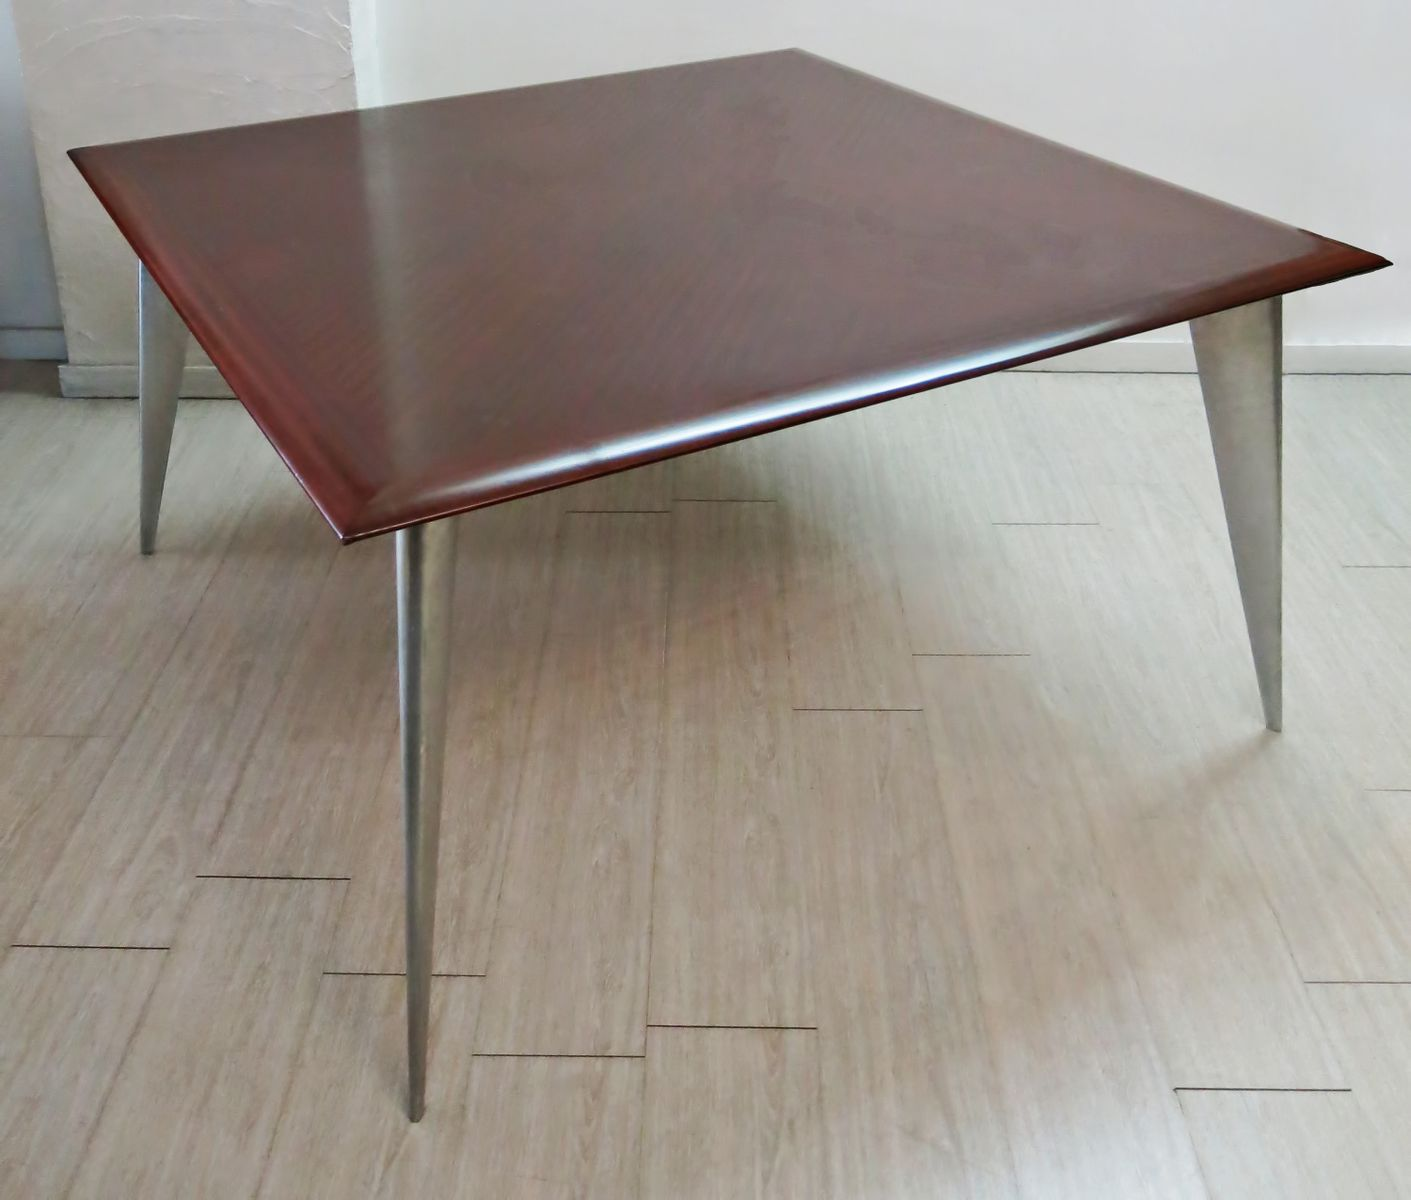 Mahogany dining table by philippe starck for aleph 1987 for Philippe starck dining tables